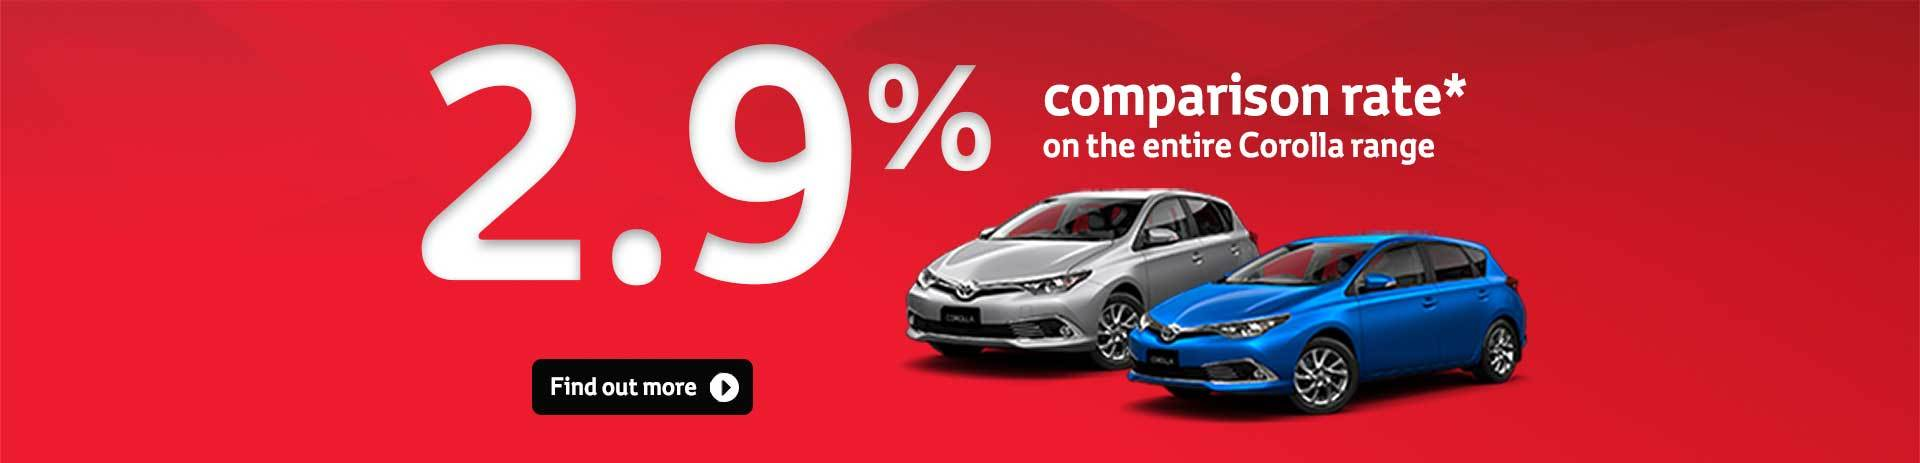 Corolla 2.9% Corolla Comparison Rate*